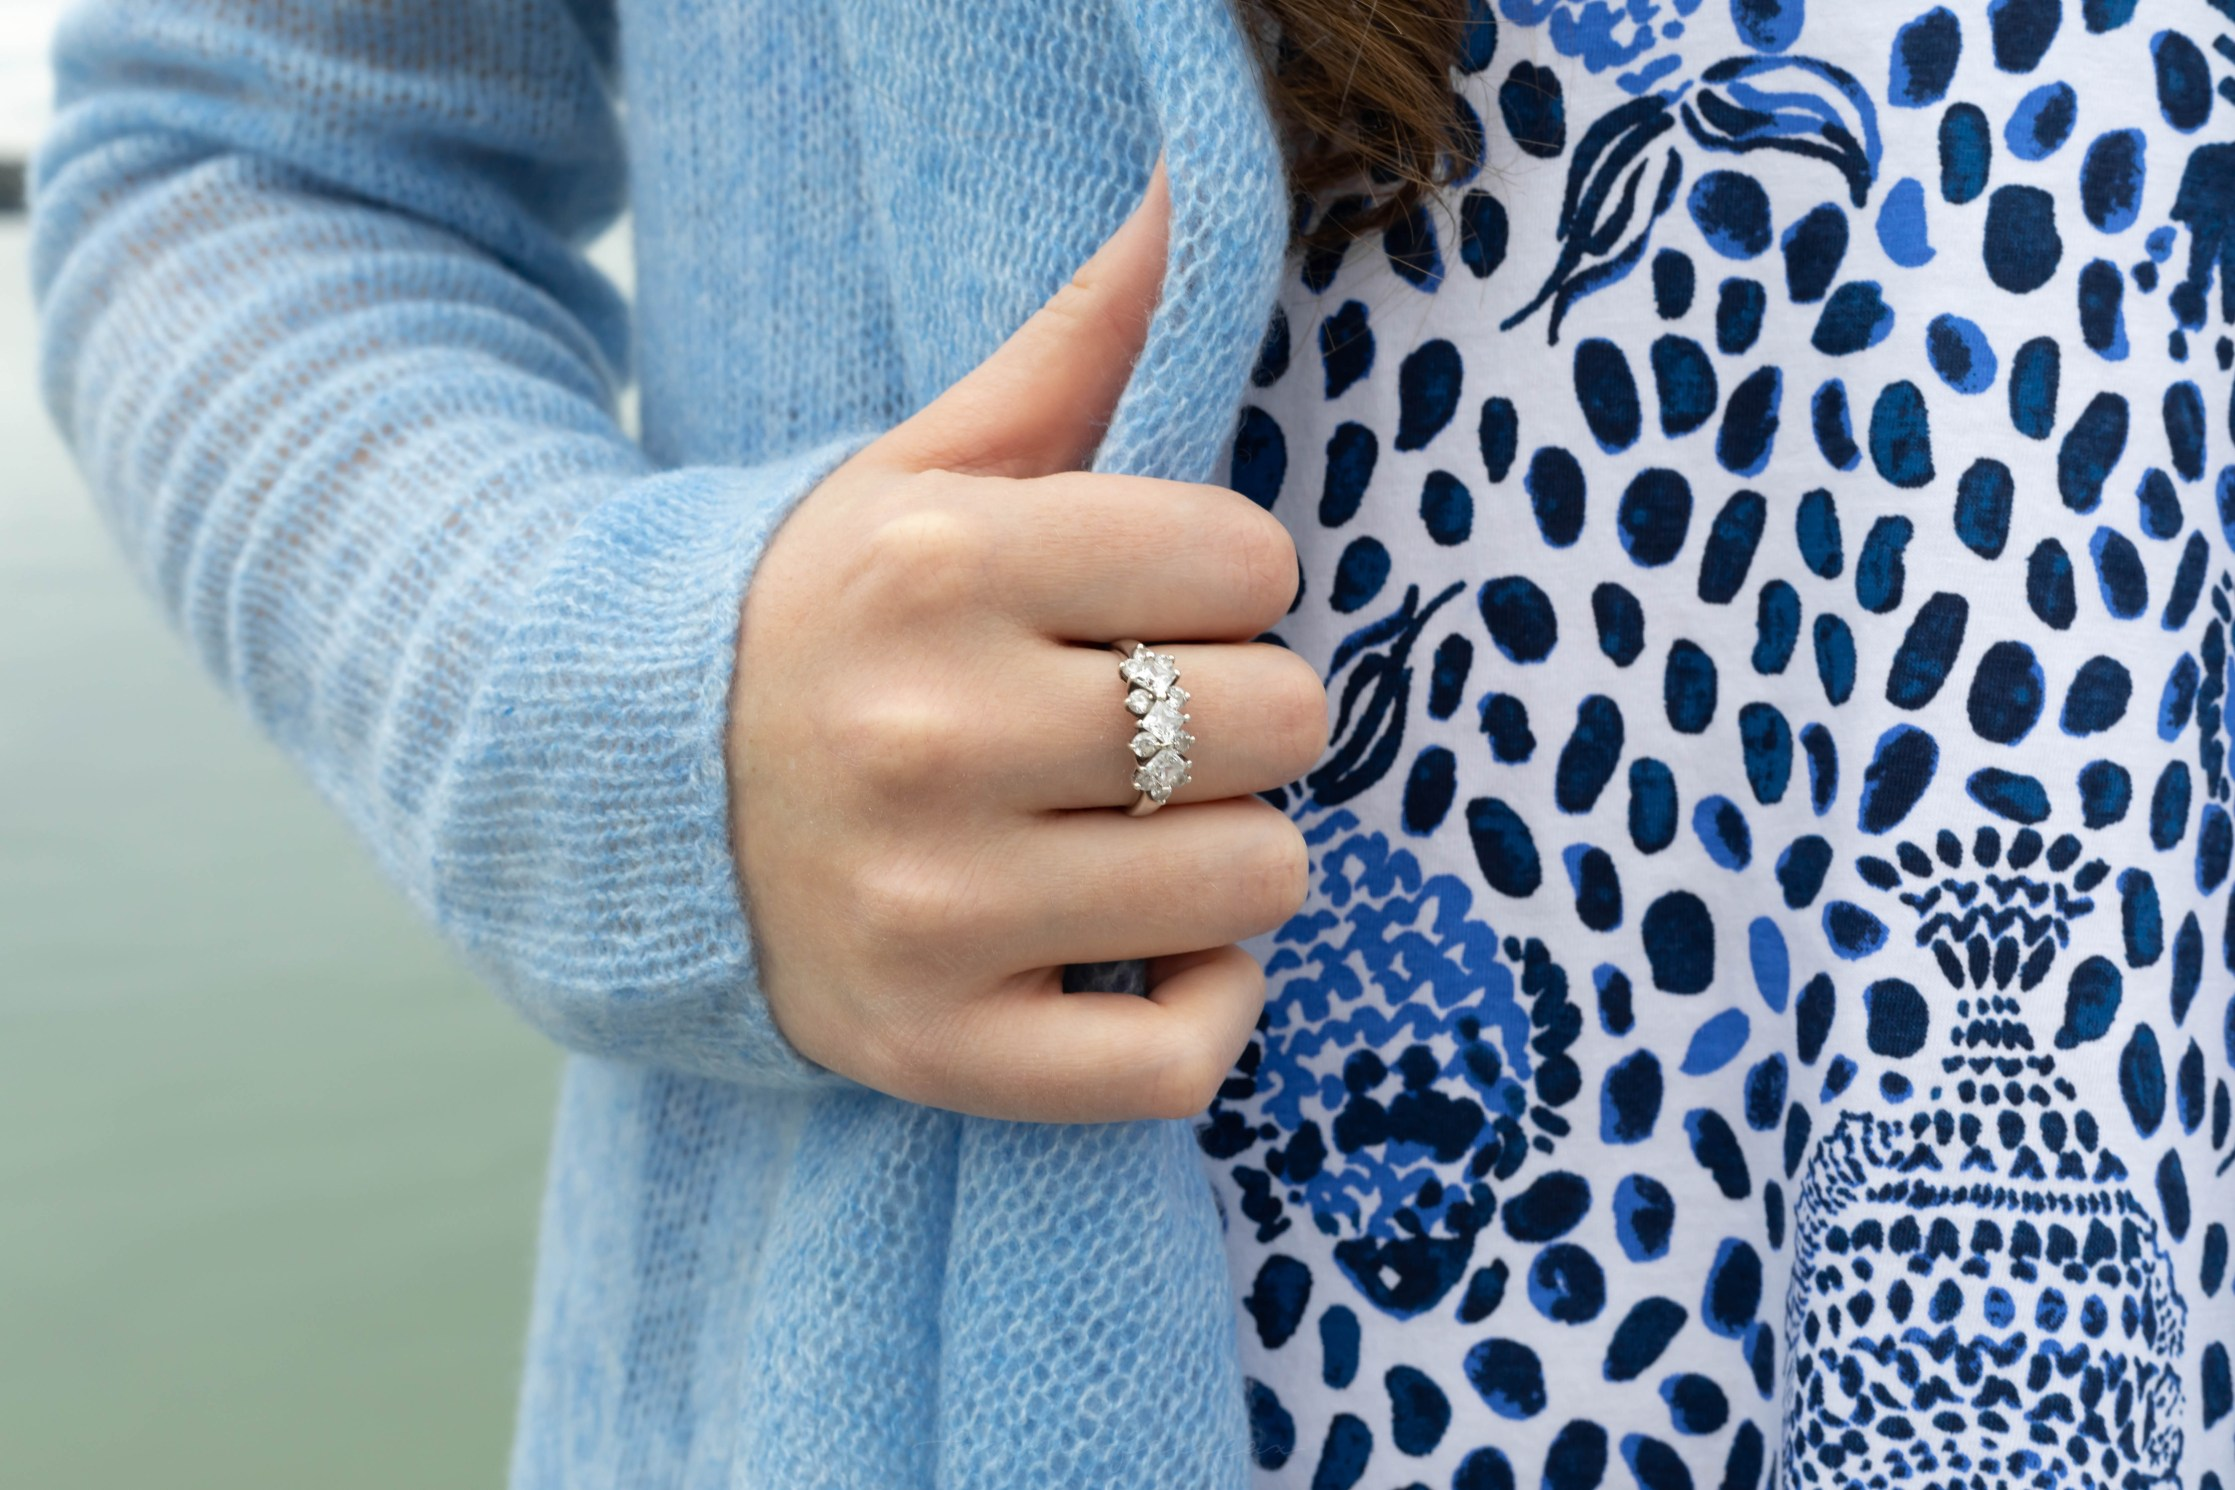 Lilly Pulitzer and Diamonds